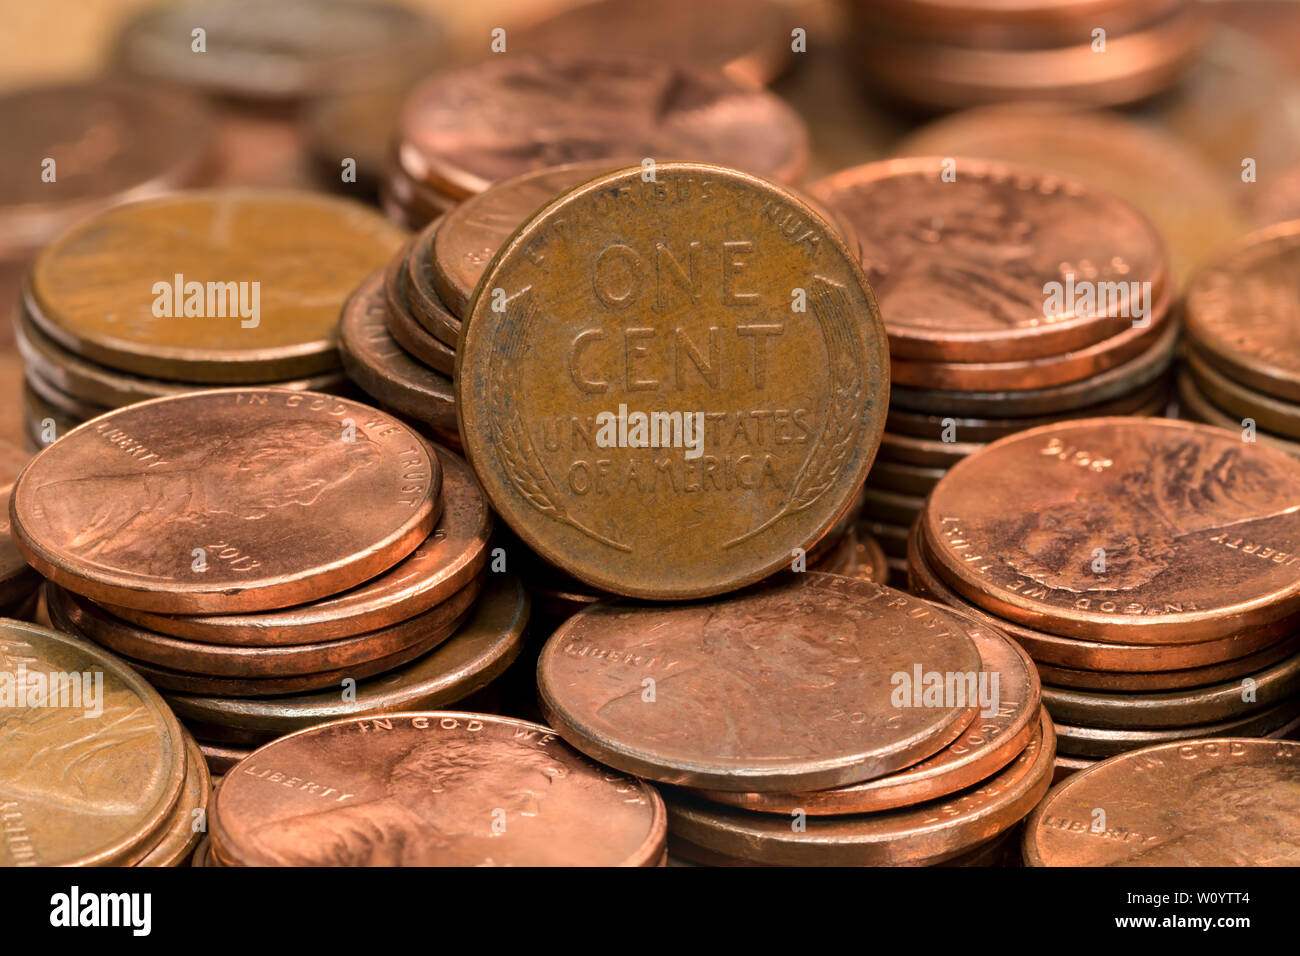 stacked coins, pennies, lined up in rows - Stock Image